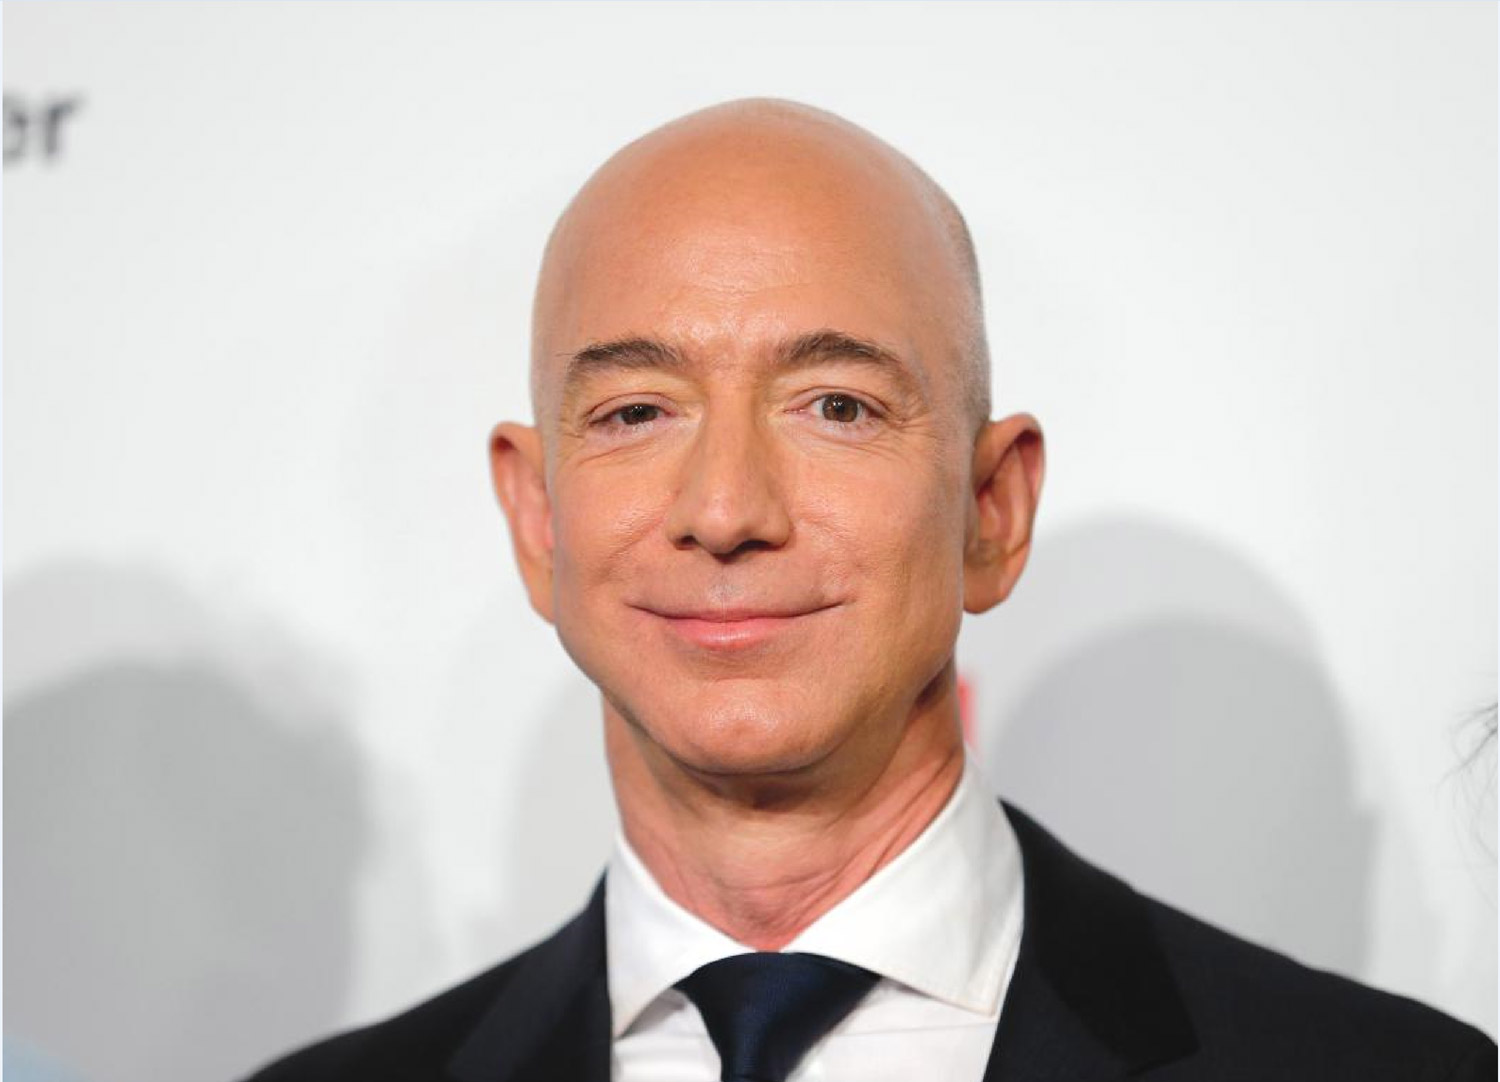 Bild: Jeff Bezos, Amazon, CEO, Forbes Billionaires 2019, USA, Ranking